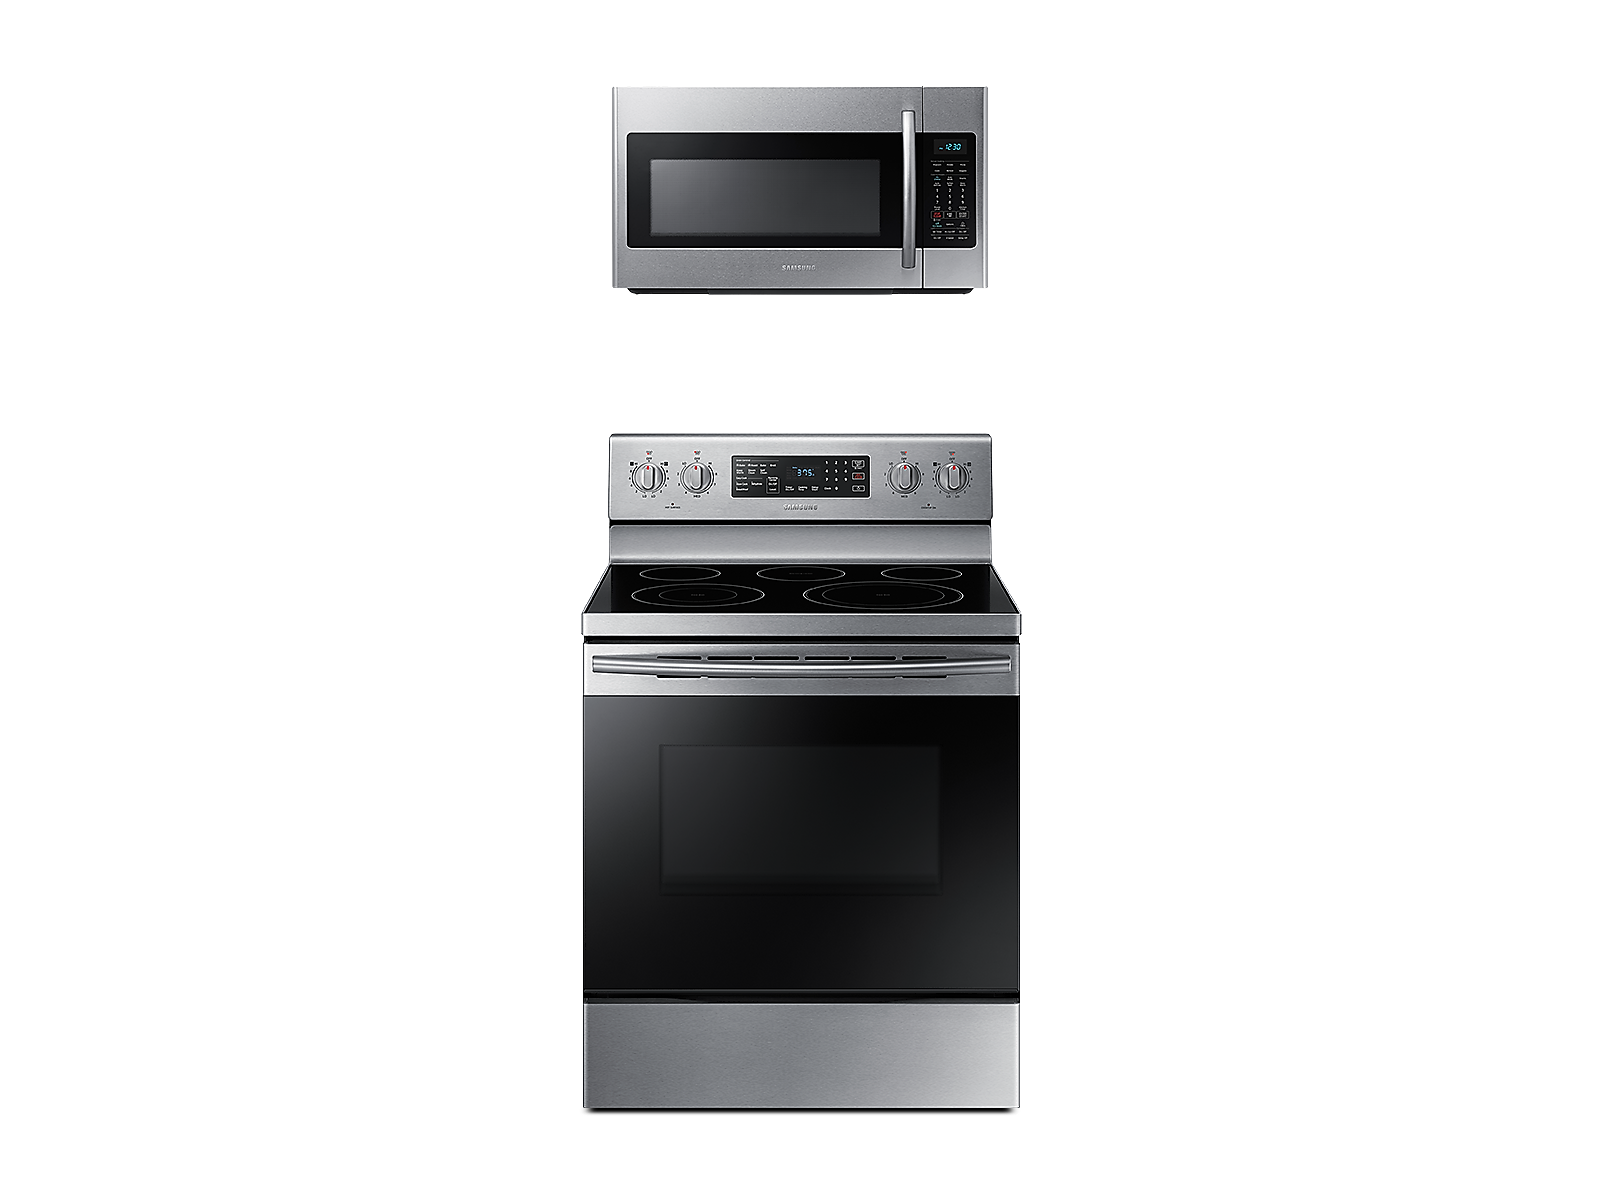 Samsung Freestanding Electric Range with Convection + Over-the-Range Microwave in Stainless Steel(BNDL-1580227280768)